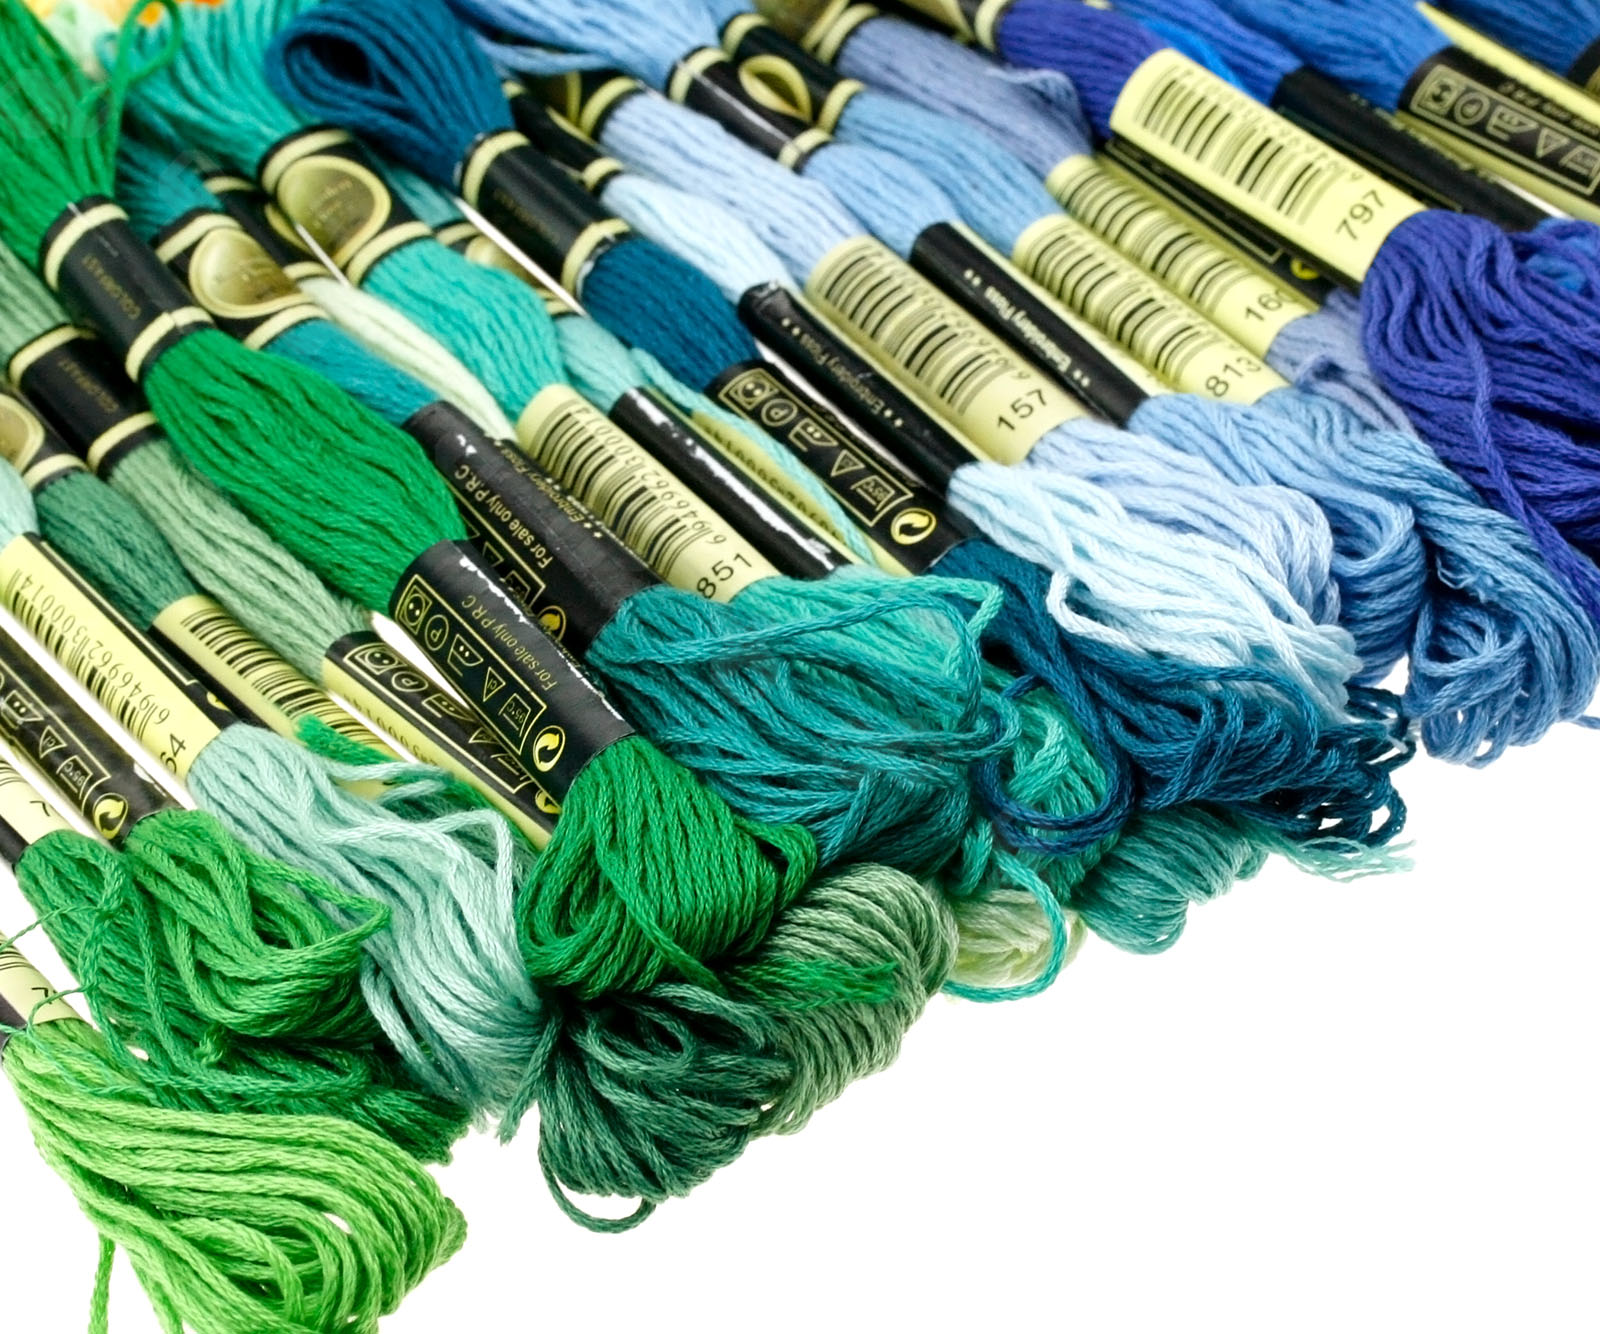 Mixed cross stitch cotton sewing embroidery thread